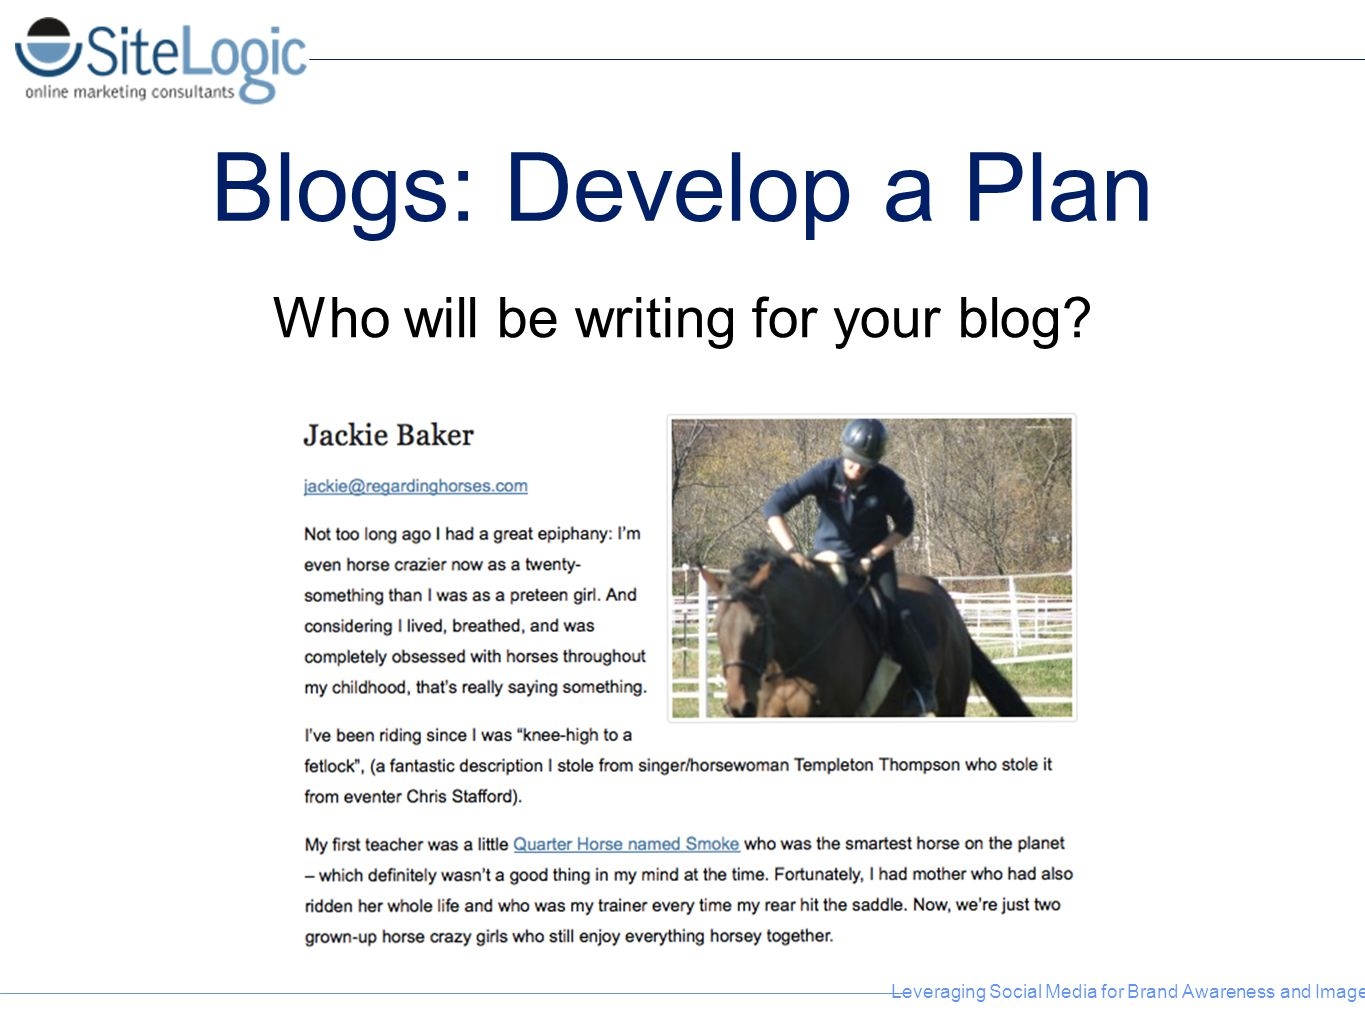 Who will be writing for your blog